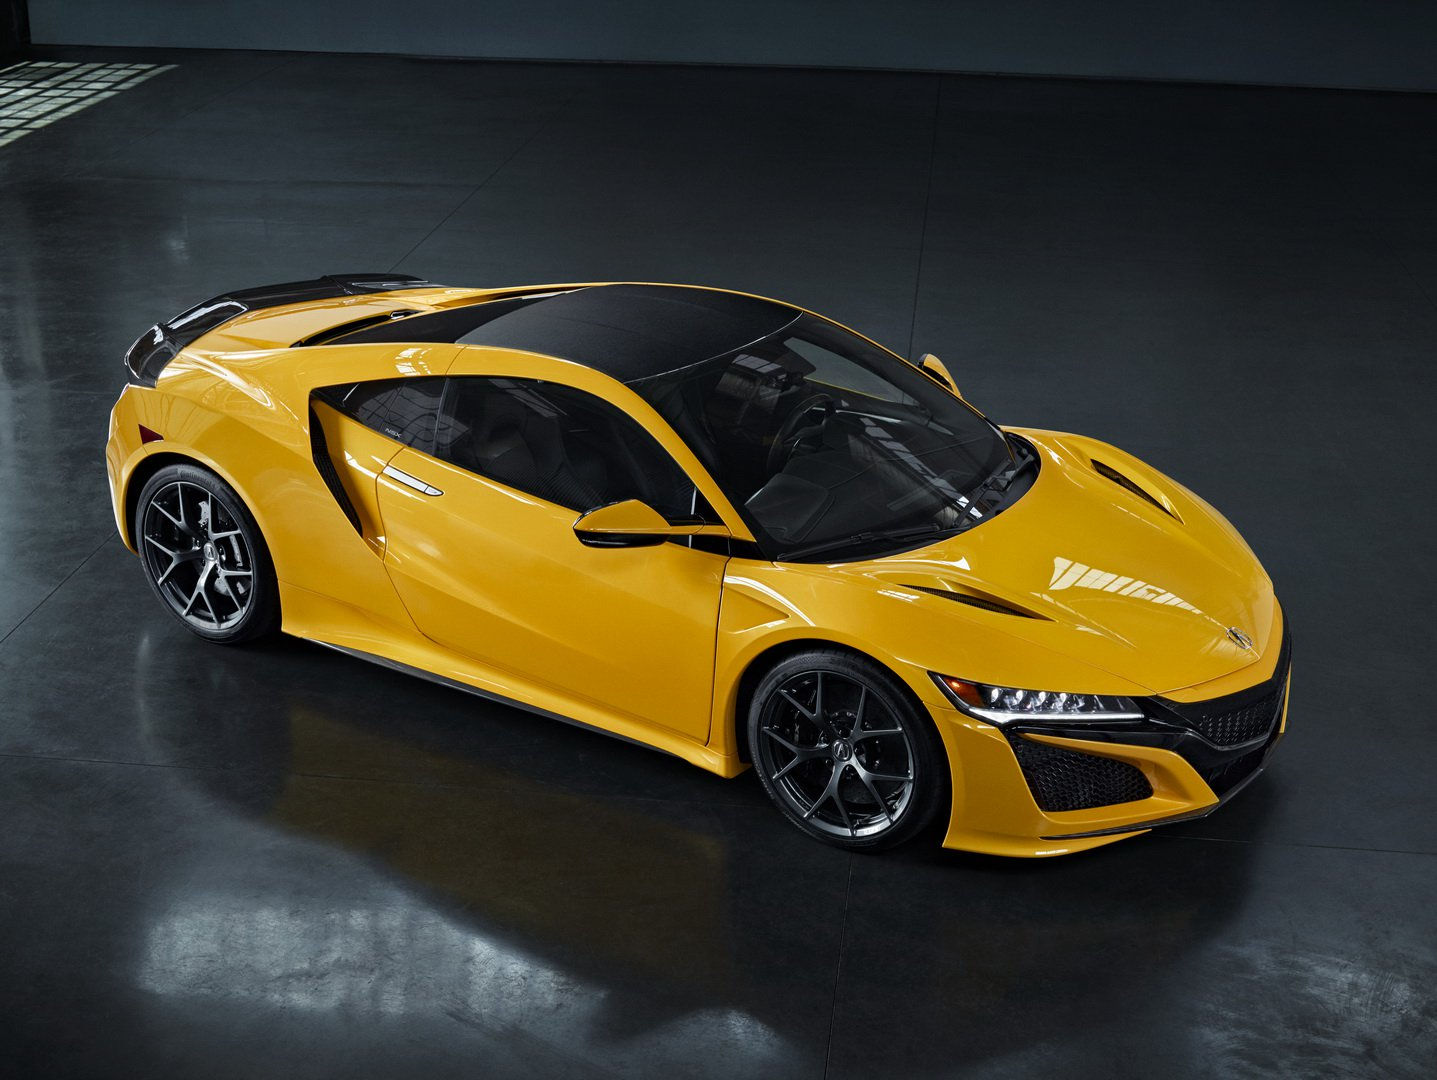 Acura NSX indy yellow pearl